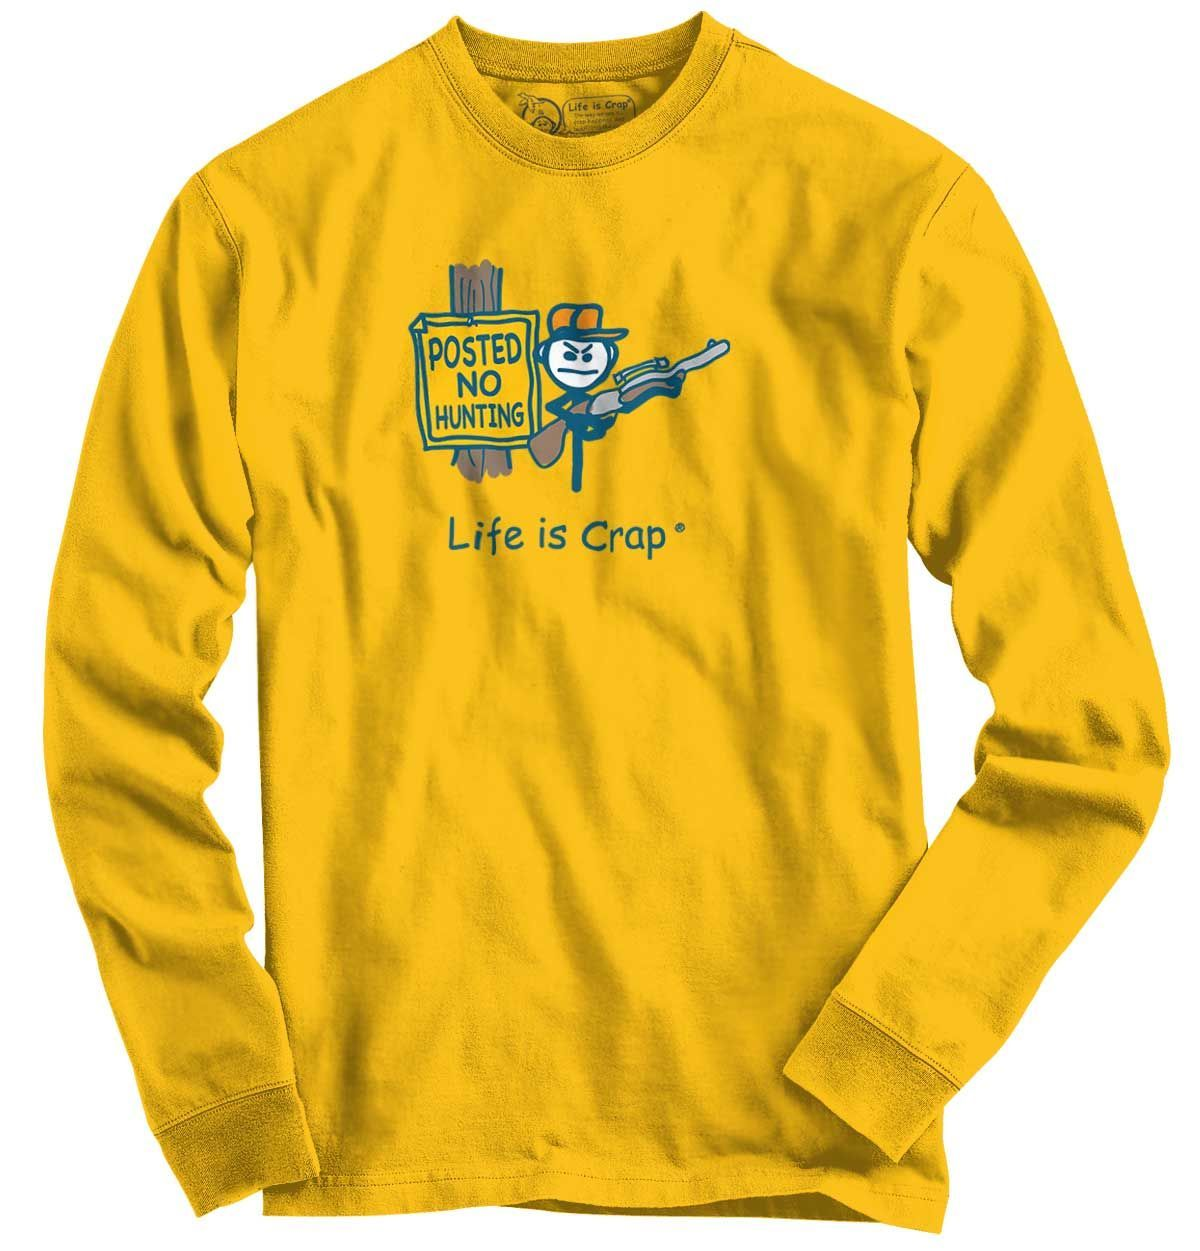 Posted No Hunting Long Sleeve Tee